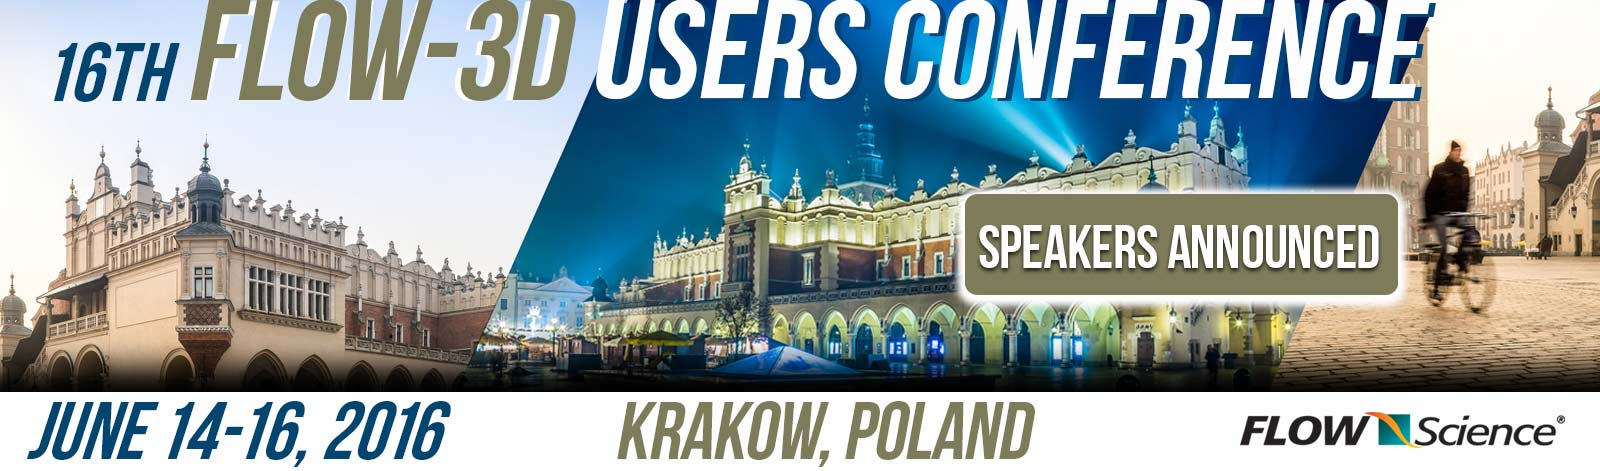 16th-FLOW3D-european-users-conference